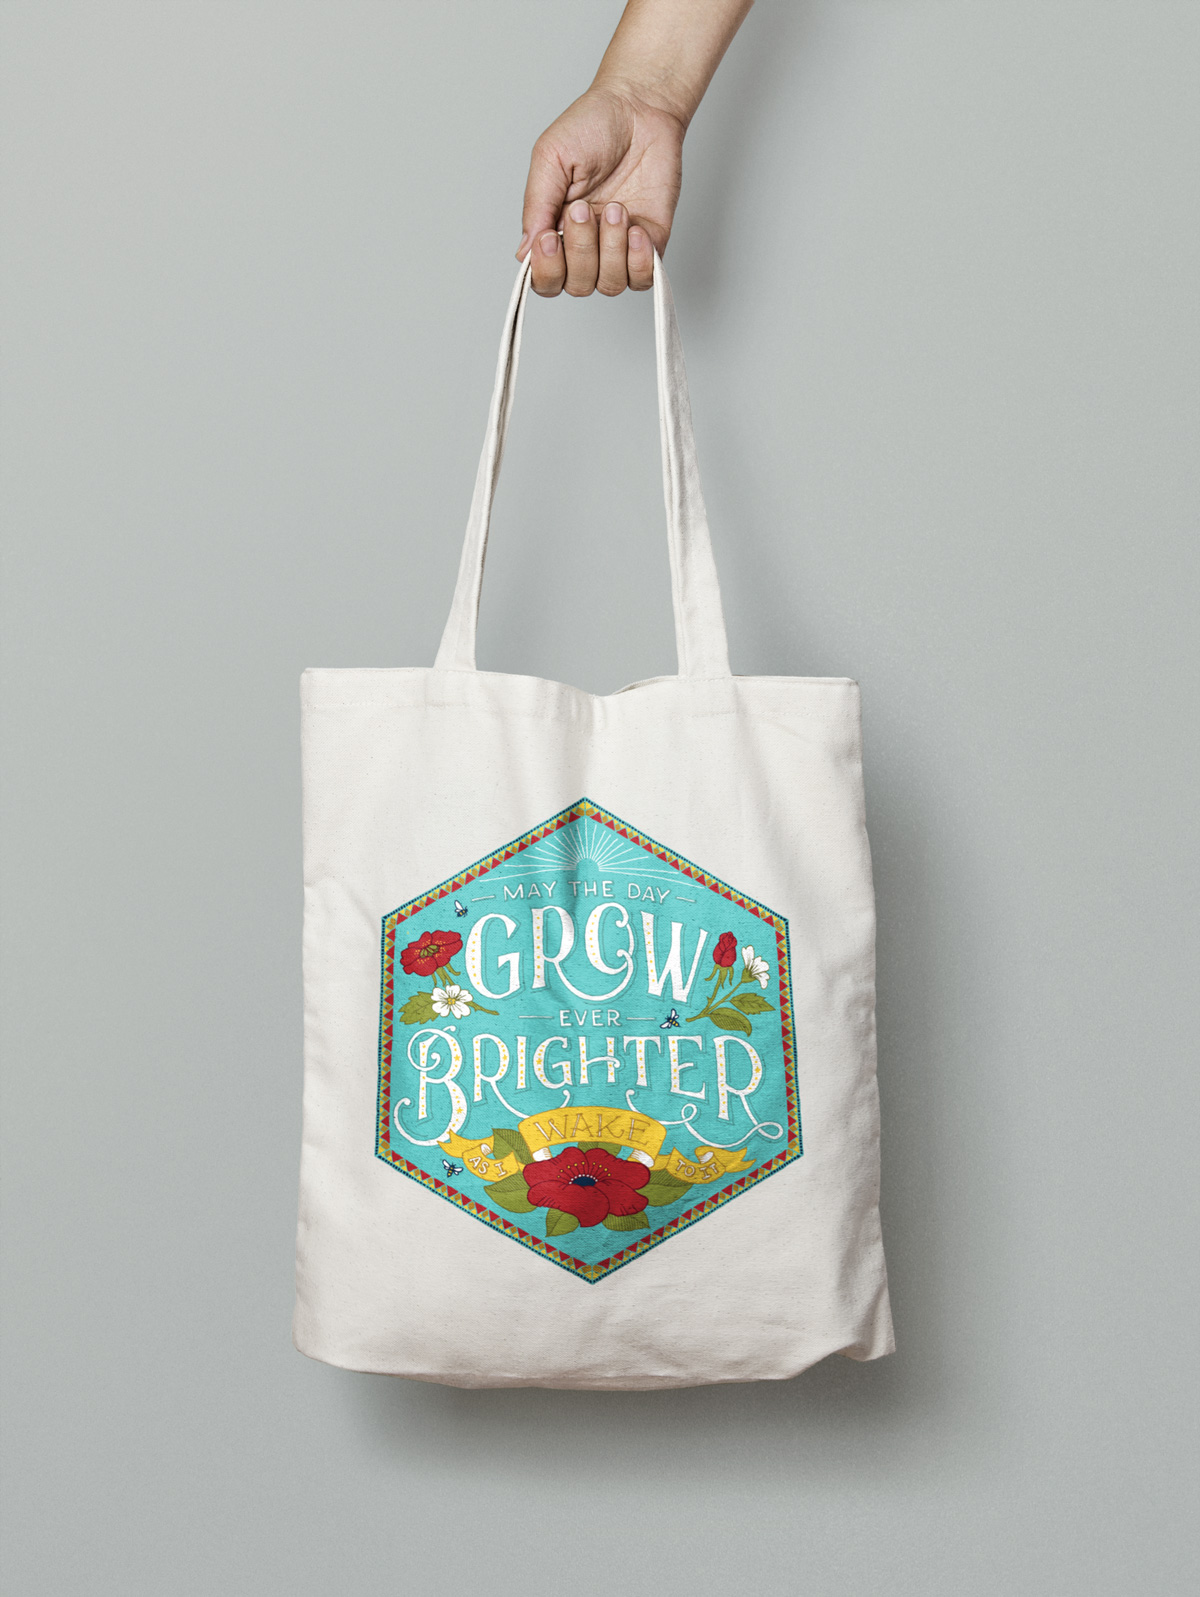 May the day grow ever brighter tote bag